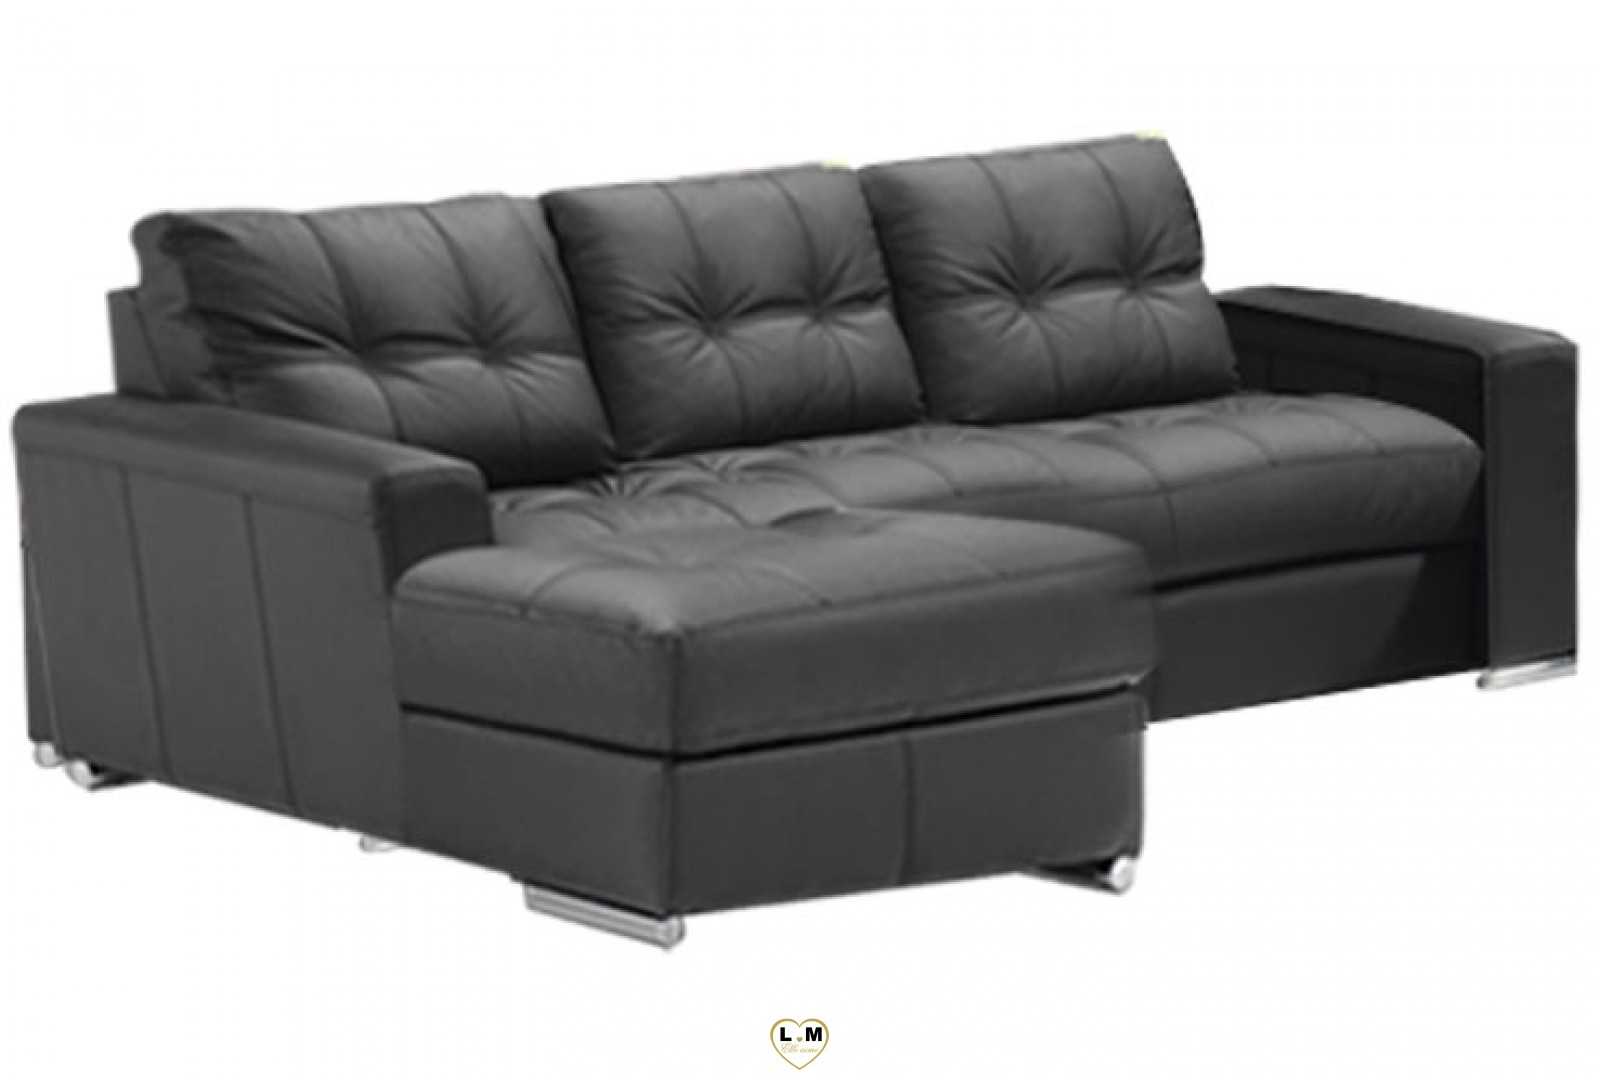 Alexie angle chaise longue ensemble salon cuir for Salon angle cuir